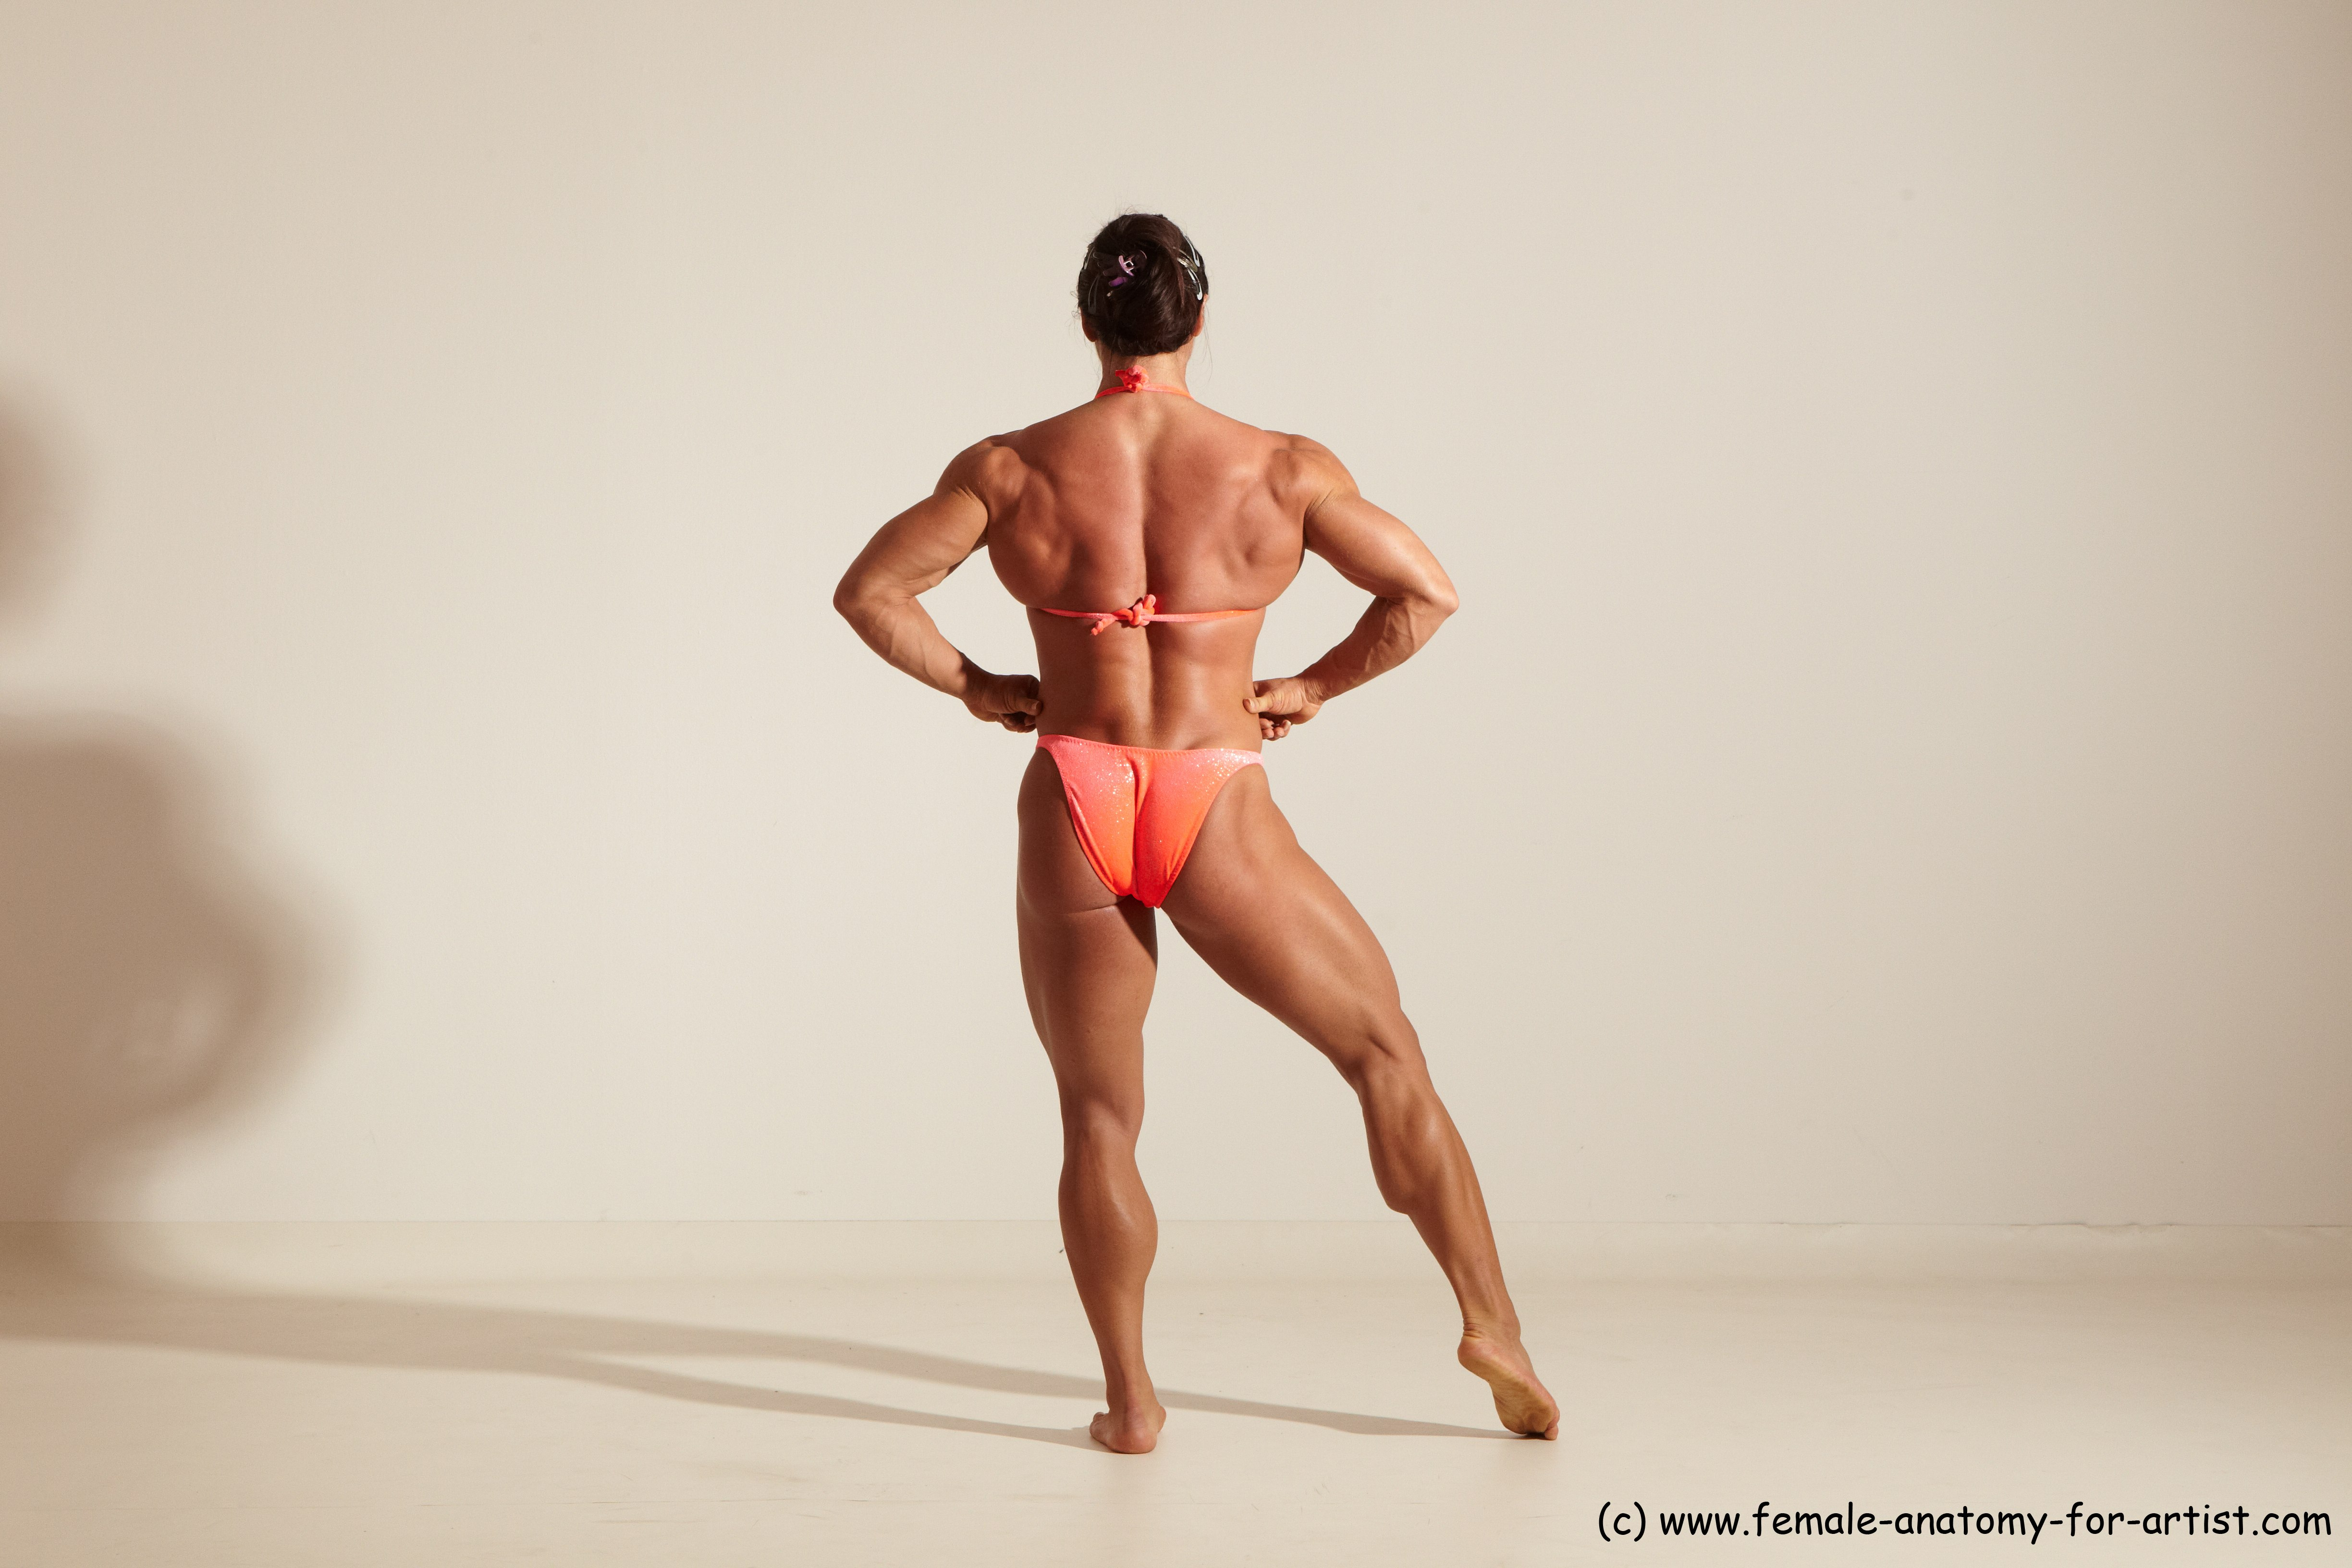 Angelina Bodybuilder | Anatomy References for Artists